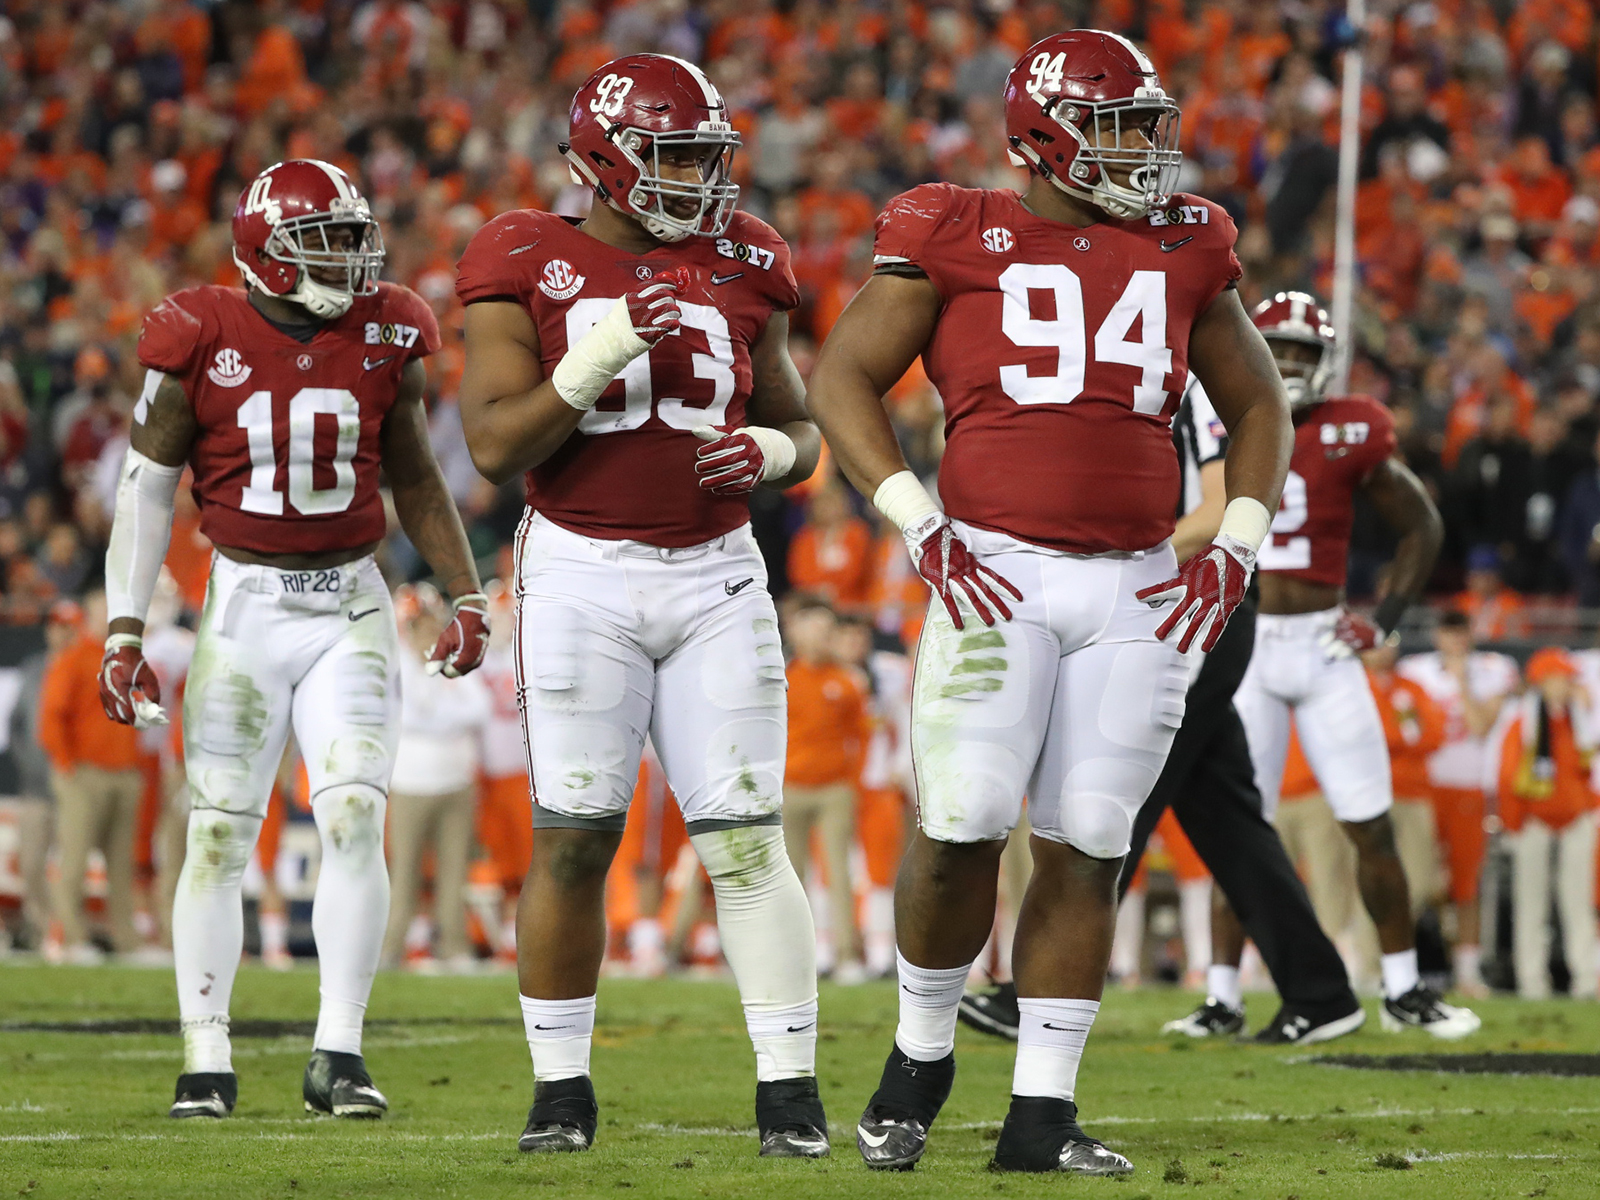 Da'Ron Payne (94) is among the five-stars expected to pick up where 2017 first-round picks Reuben Foster (10) and Jonathan Allen (93) left off on Saban's dominant defense.